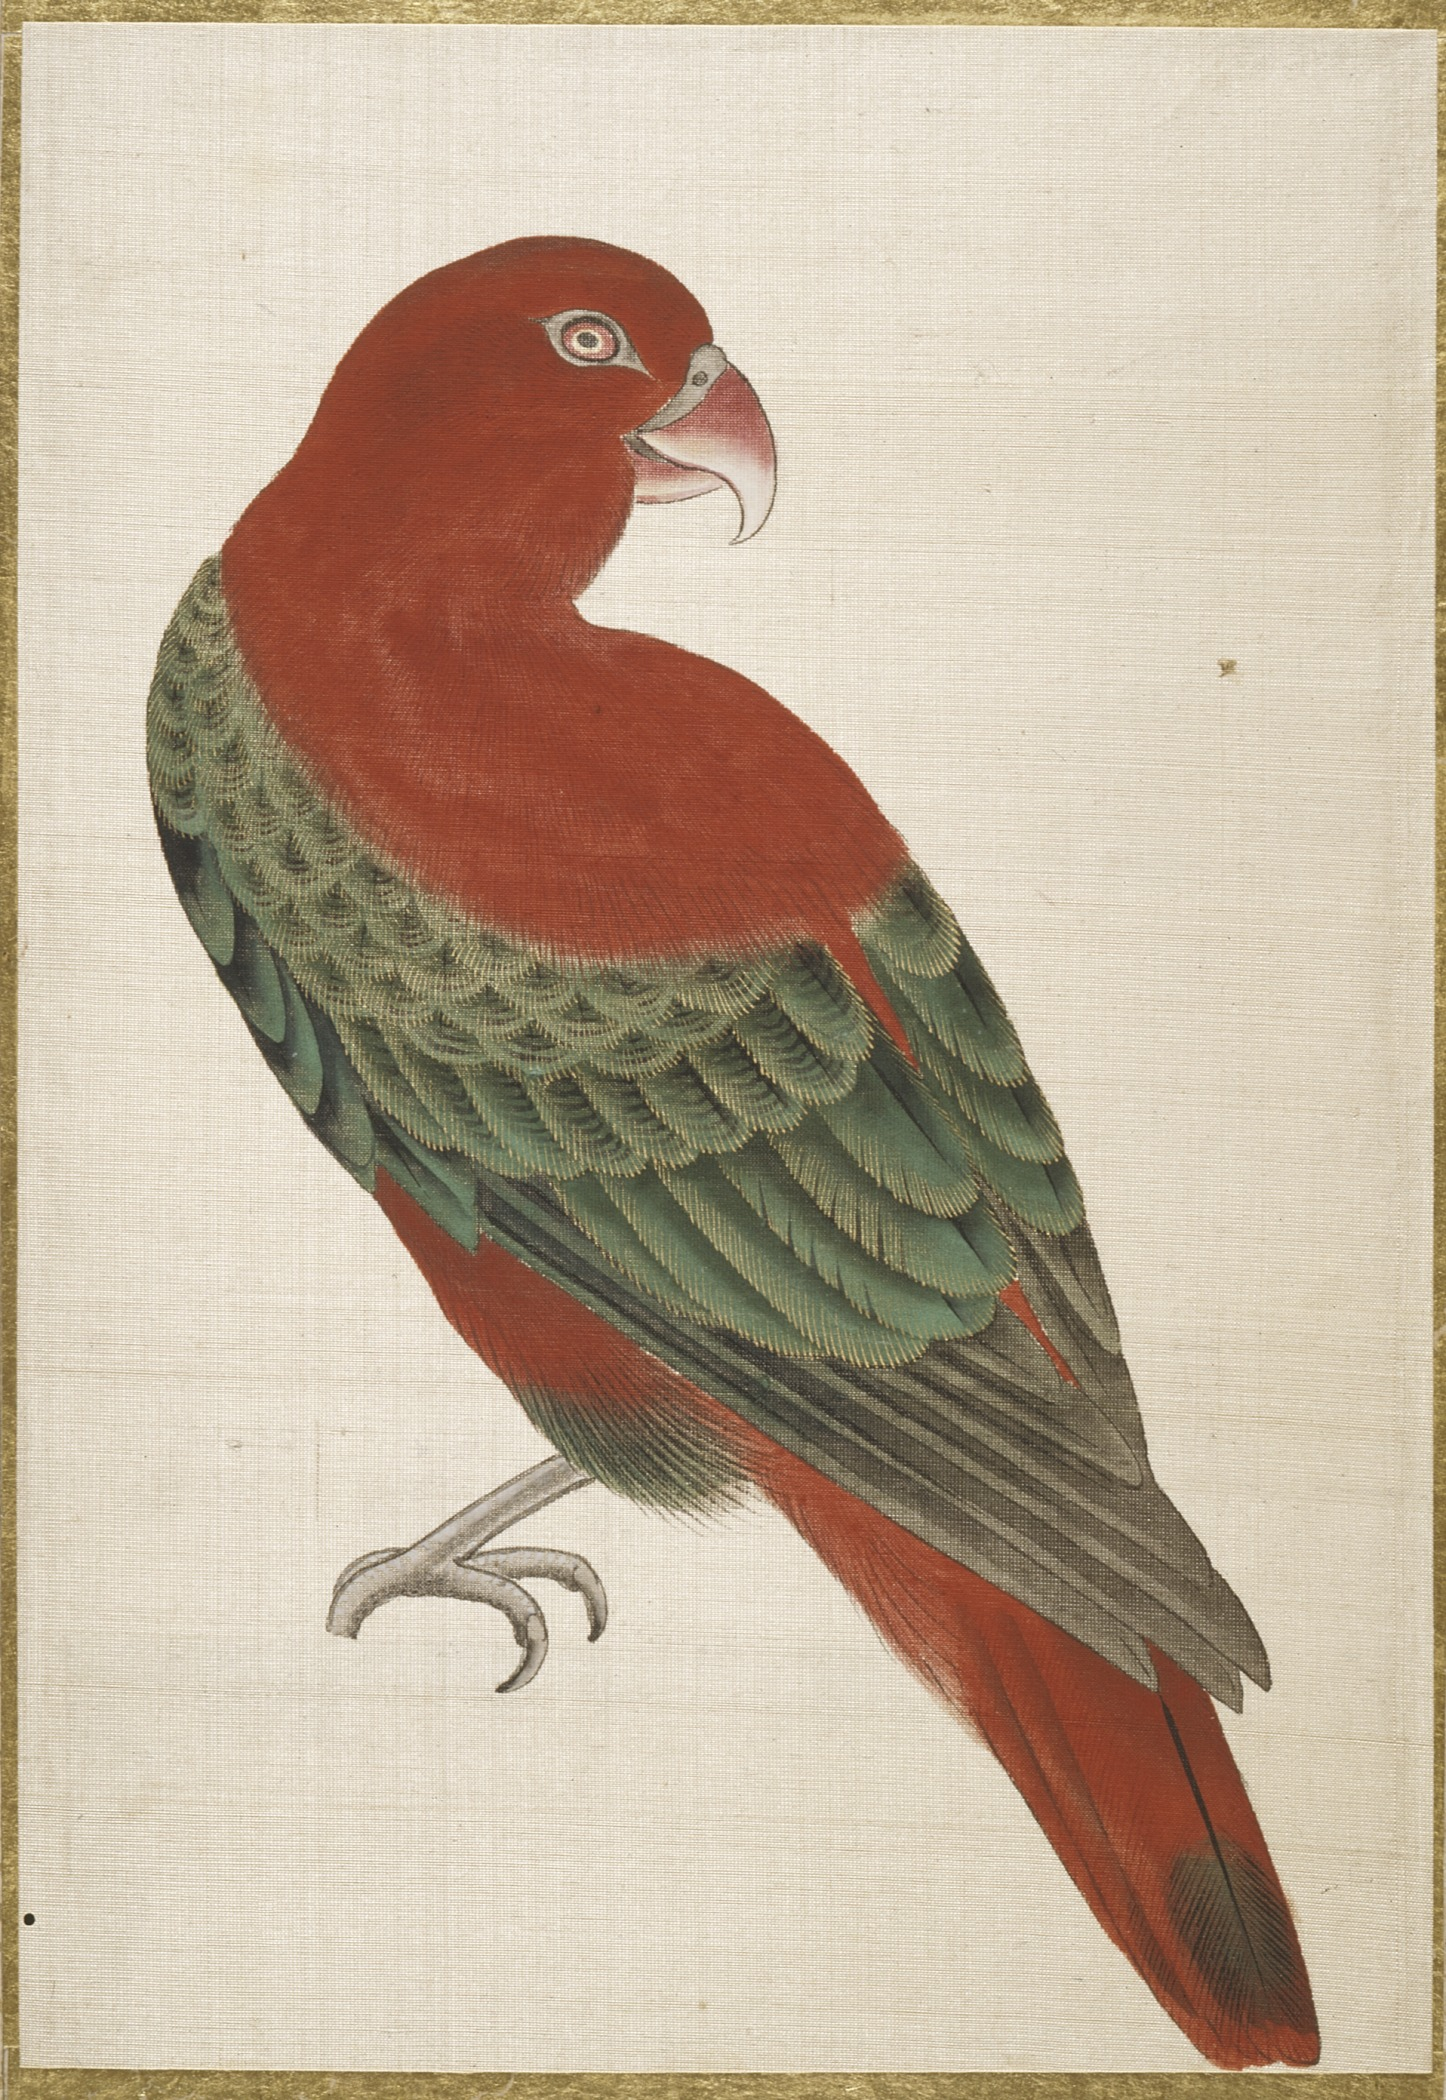 https://upload.wikimedia.org/wikipedia/commons/9/91/Pictures_of_Flowers_and_Birds_LACMA_M.85.99_%2813_of_25%29.jpg